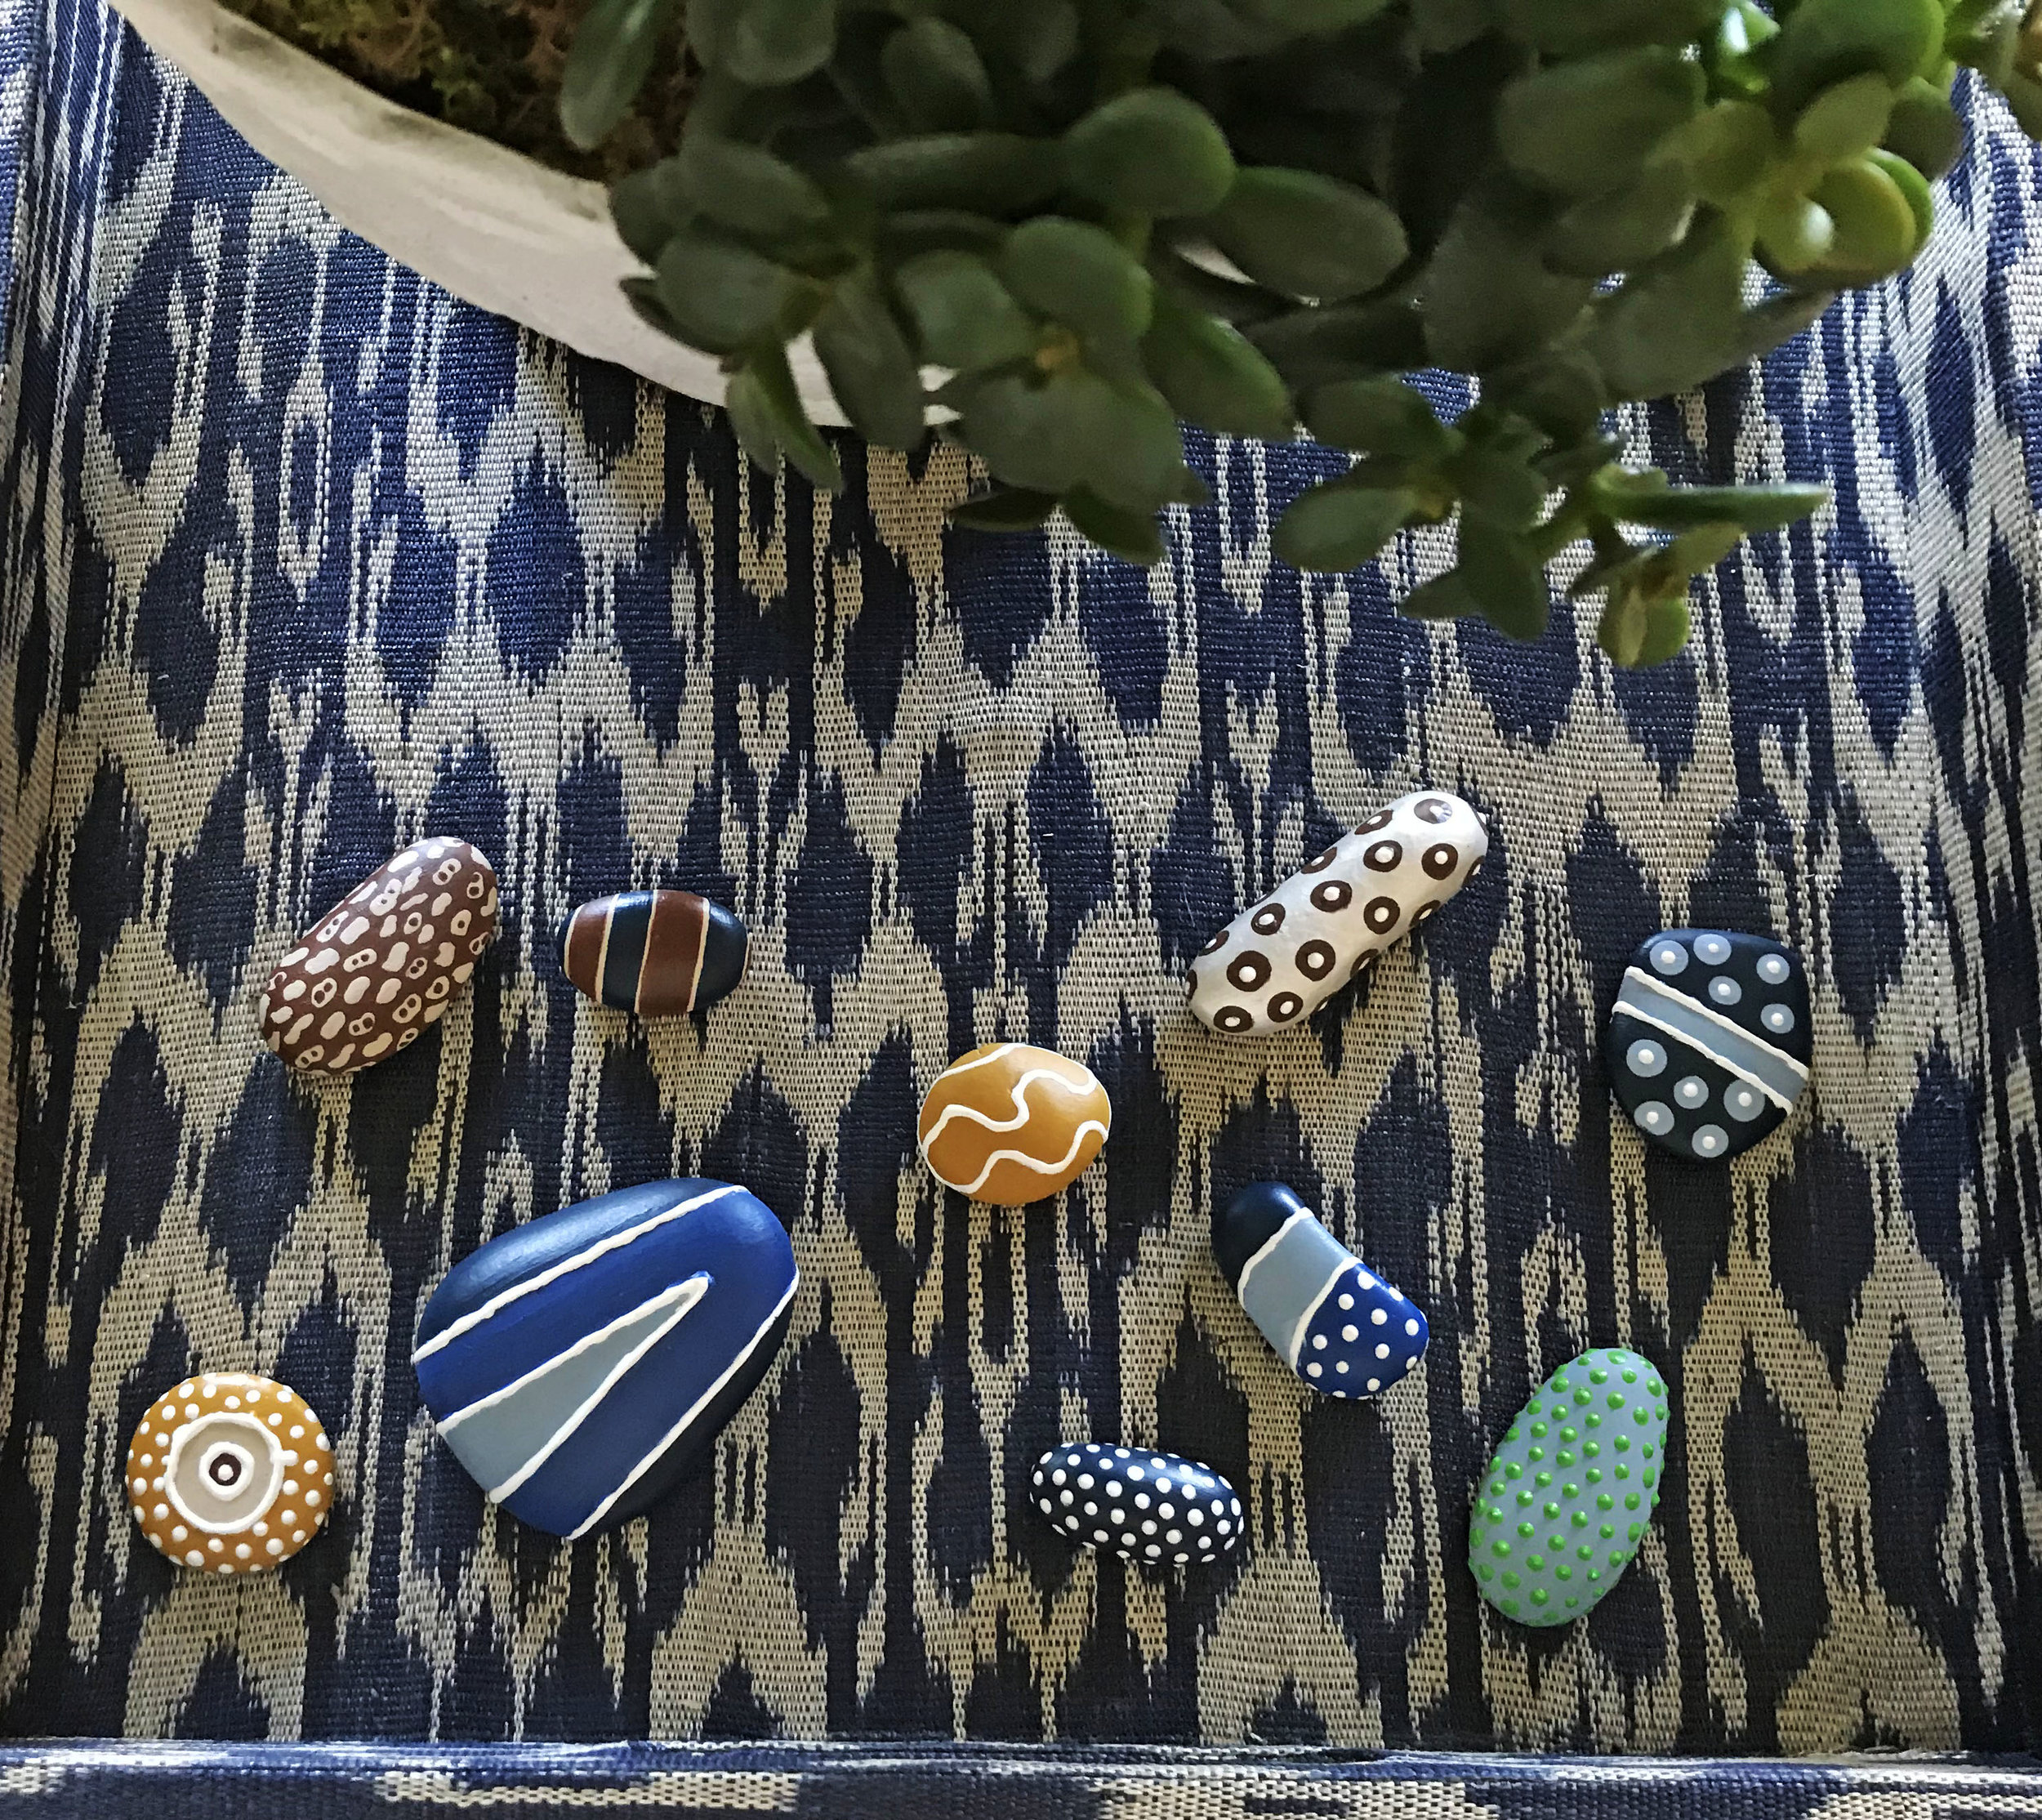 I love this small collection of hand painted rocks. The pattern play makes them an instant curiosity in this tray. Collections are for examining and provoking thought.